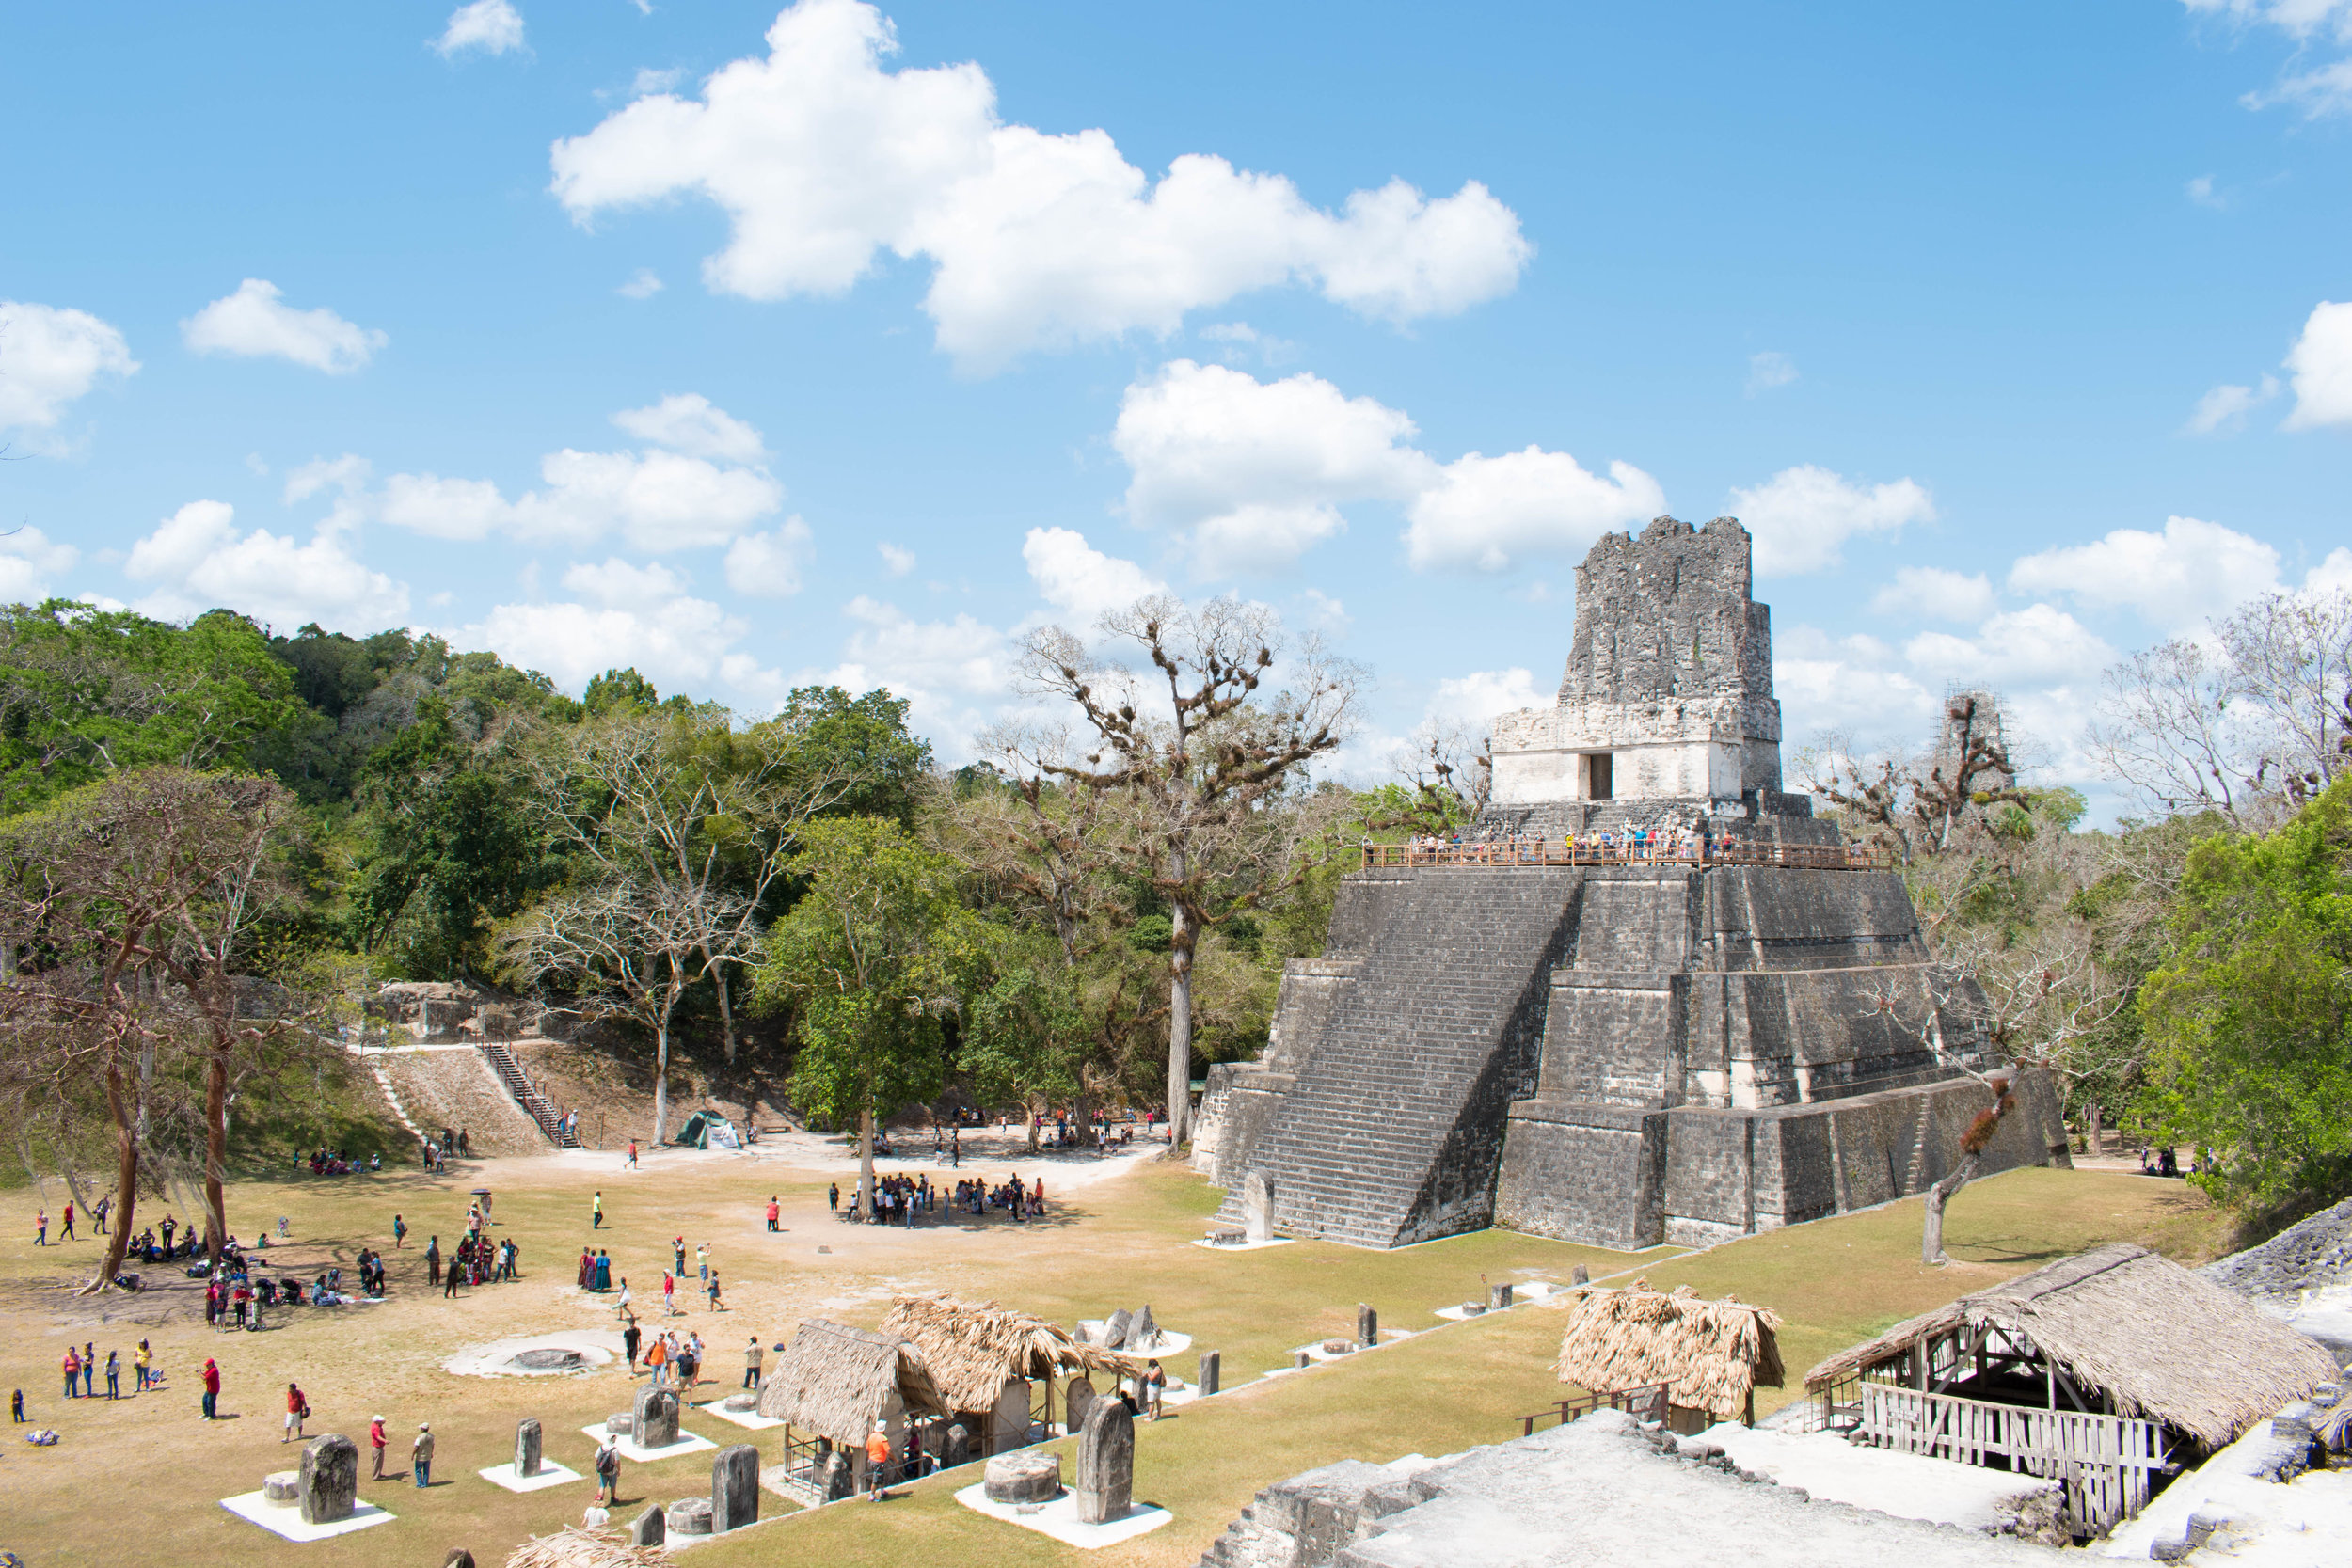 Temple II and the Great Plaza in Tikal, Guatemala